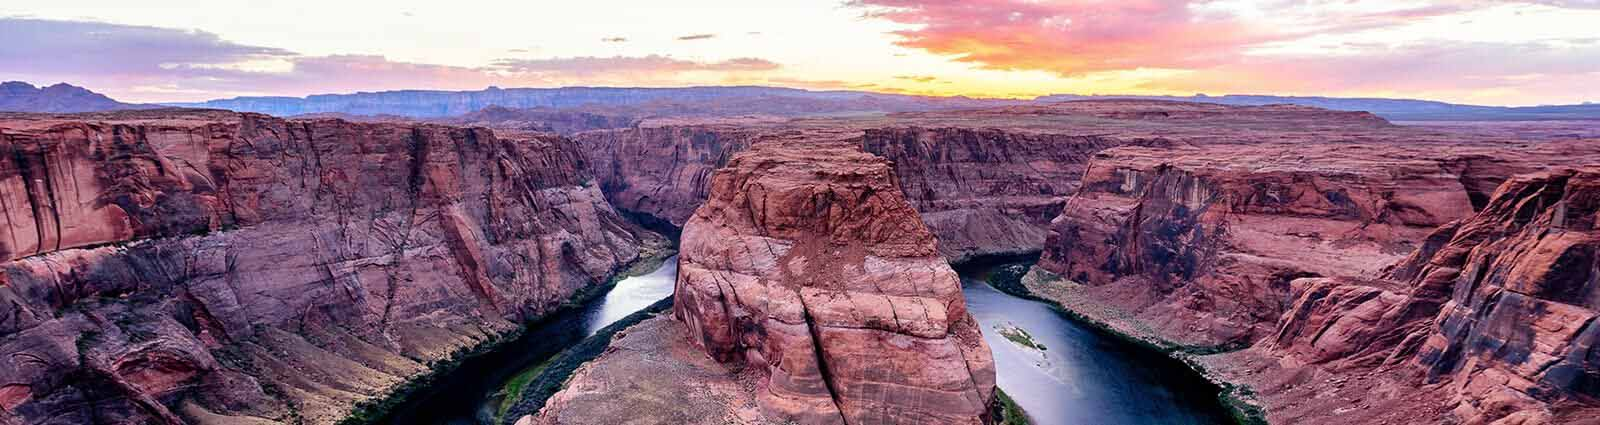 Horseshoe Bend At Sunset, Colorado River, Arizona